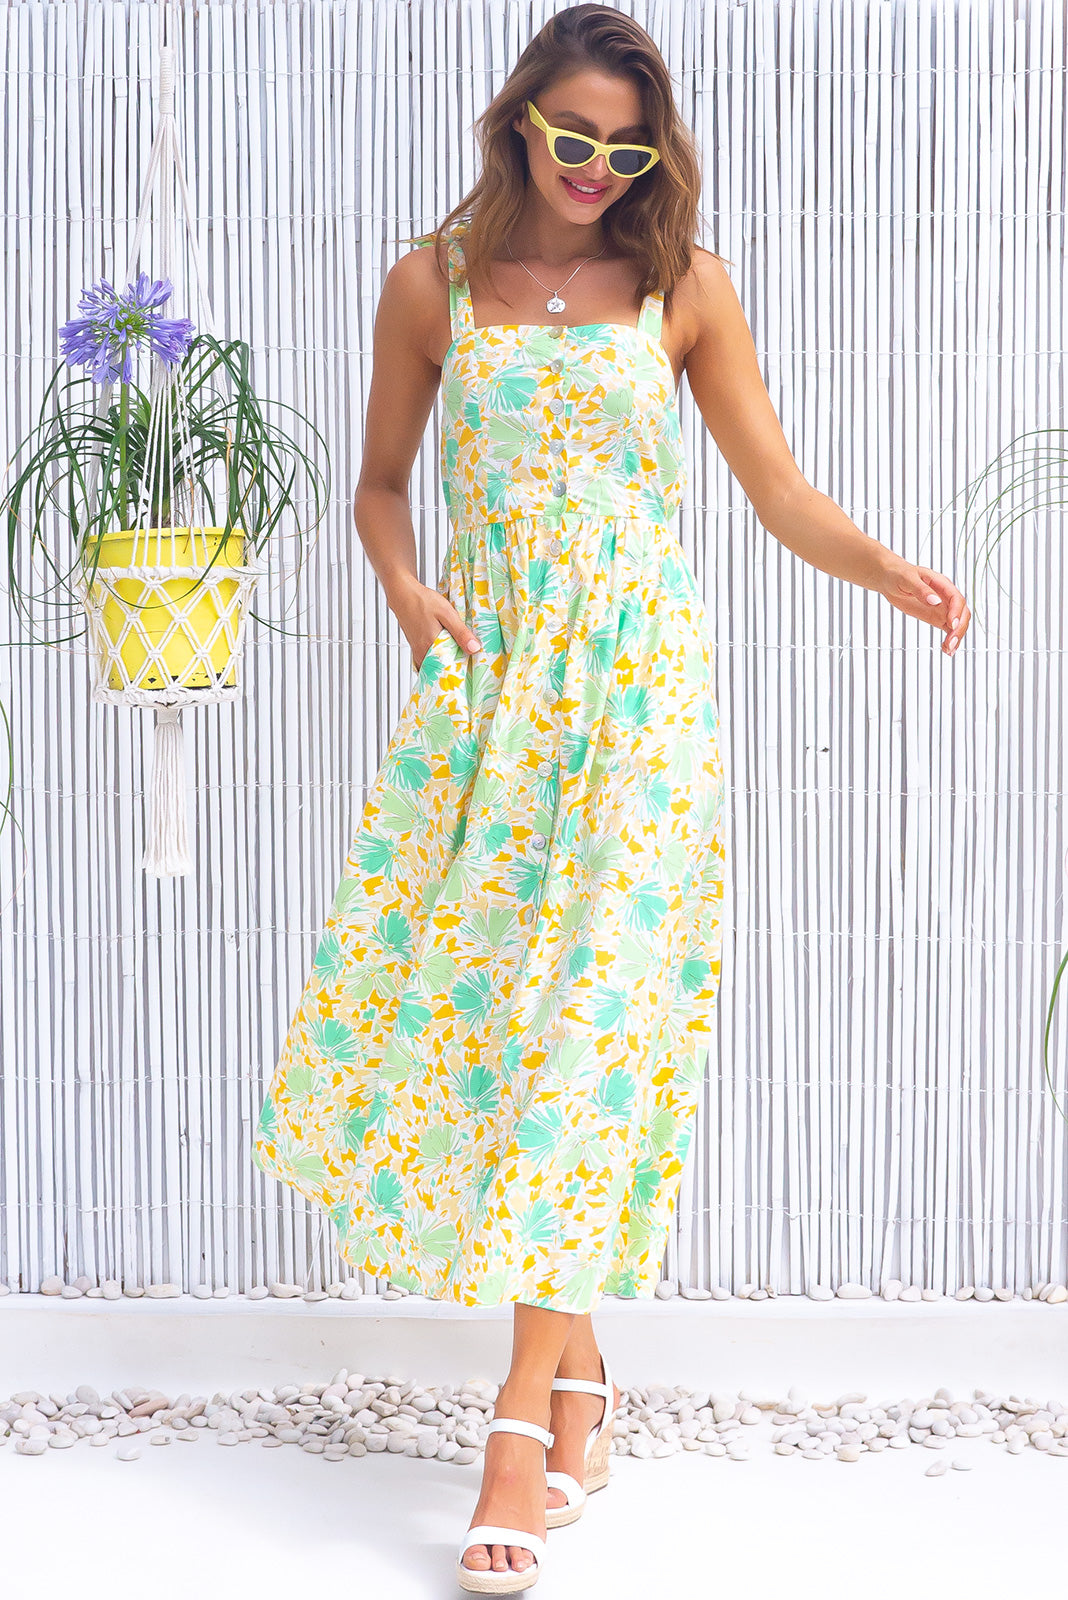 The Midsummer Lemon and Lime Dress features straight neckline, tie up shoulder straps, functional shell button front, side pockets, elasticated waist back and woven 100% cotton poplin in white base splashed with a bright, yellow and green print.